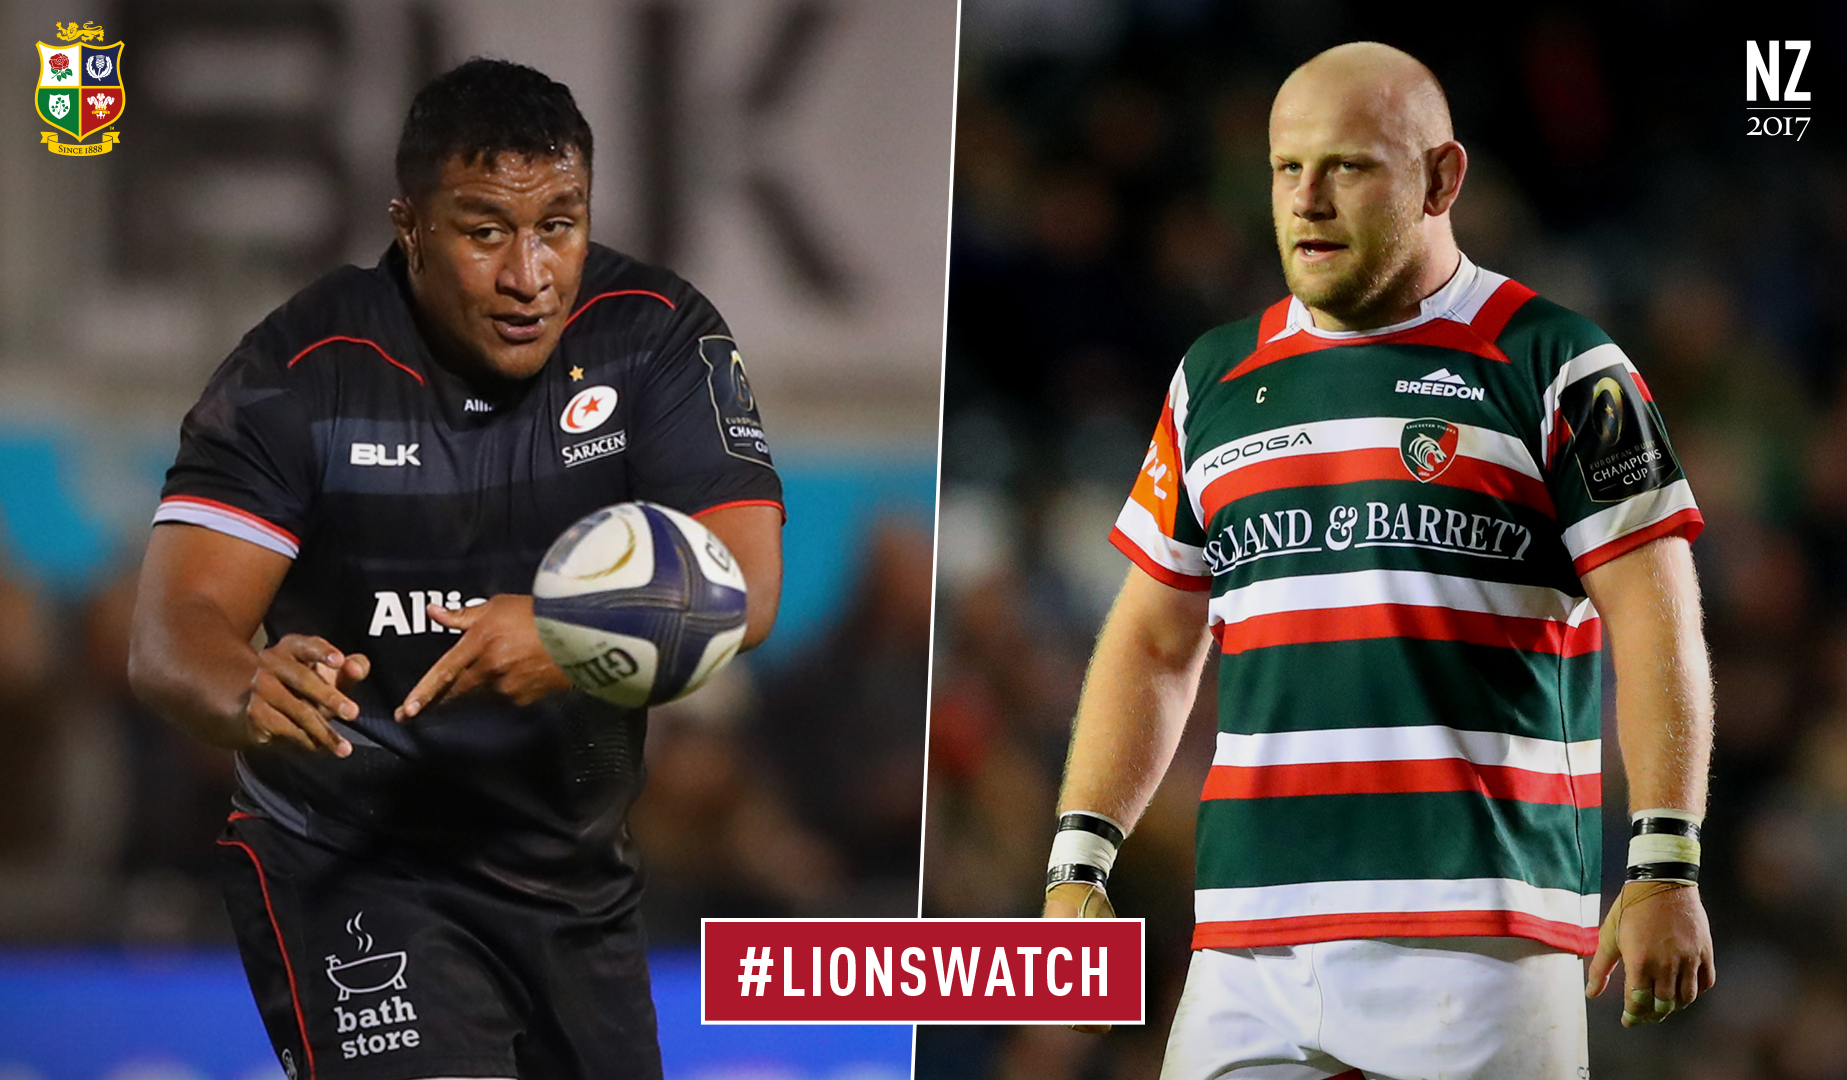 LionsWatch: Who's in action this weekend?